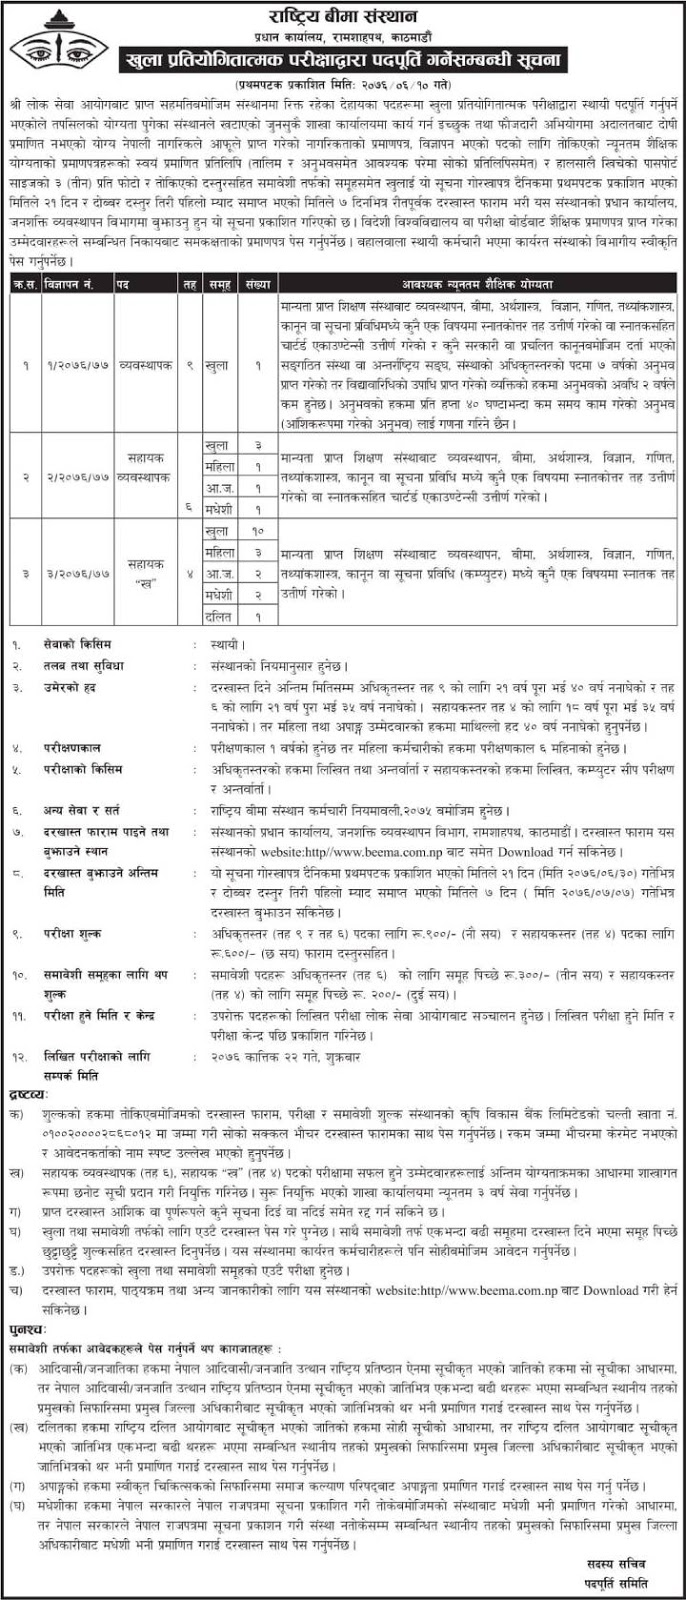 Rastriya Beema Sansthan Vacancy Notice